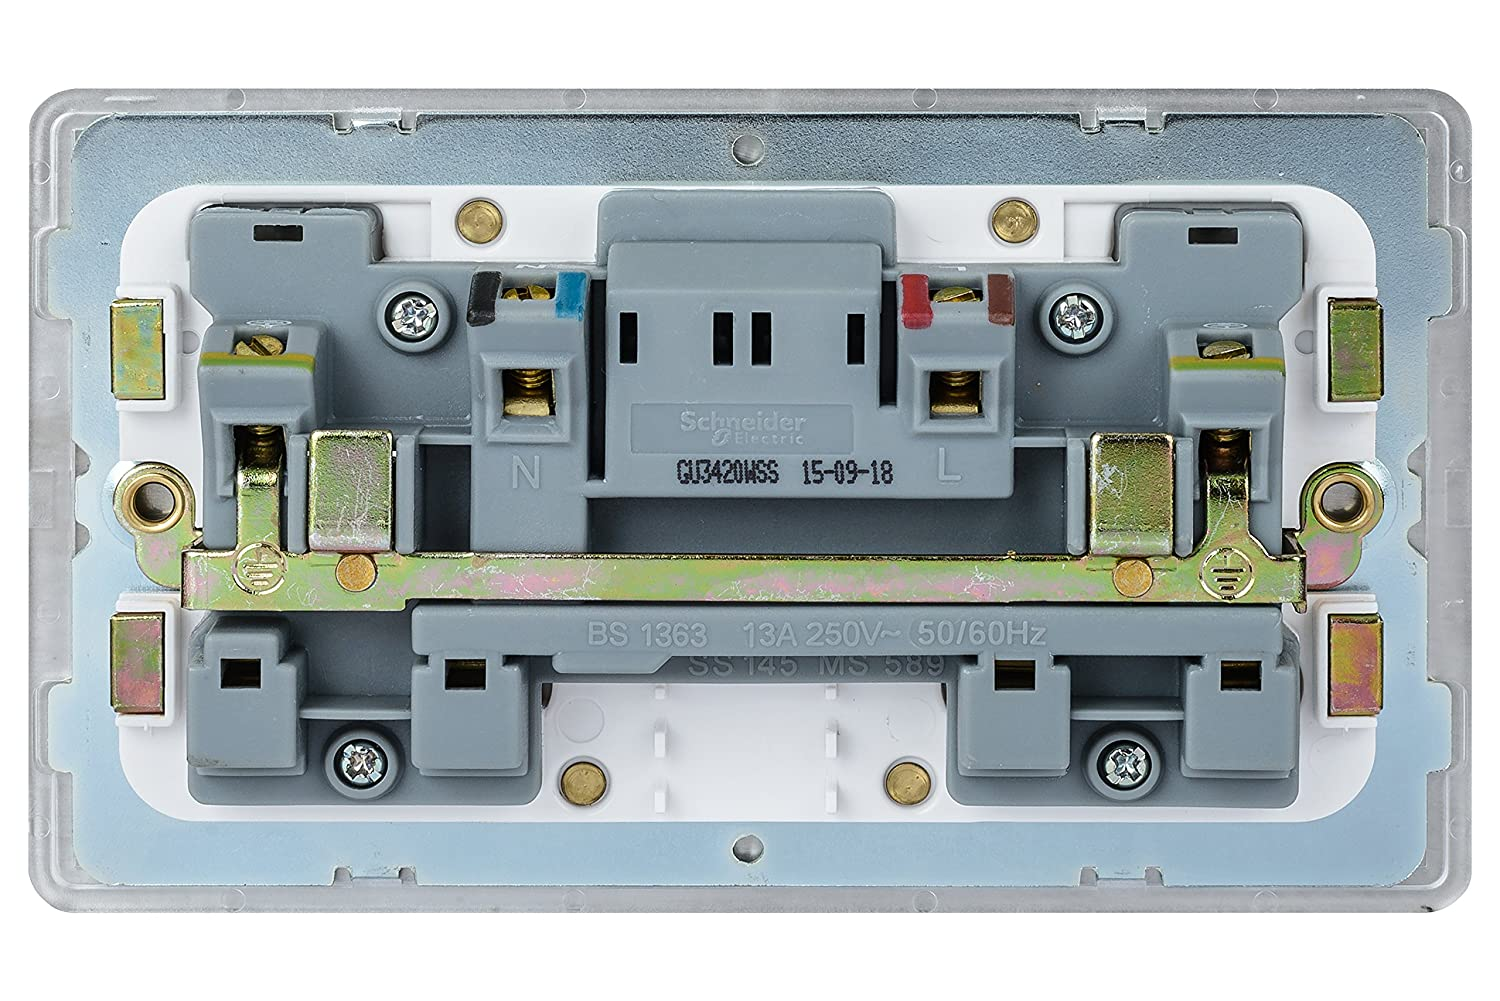 Schneider Electric Gu3420wss Ultimate Screwless Flat Plate 13a 13 Amp Plug Top Bs1363 Stevenson Plumbing Electrical Supplies Switched Double Socket Stainless Steel White Insert Diy Tools